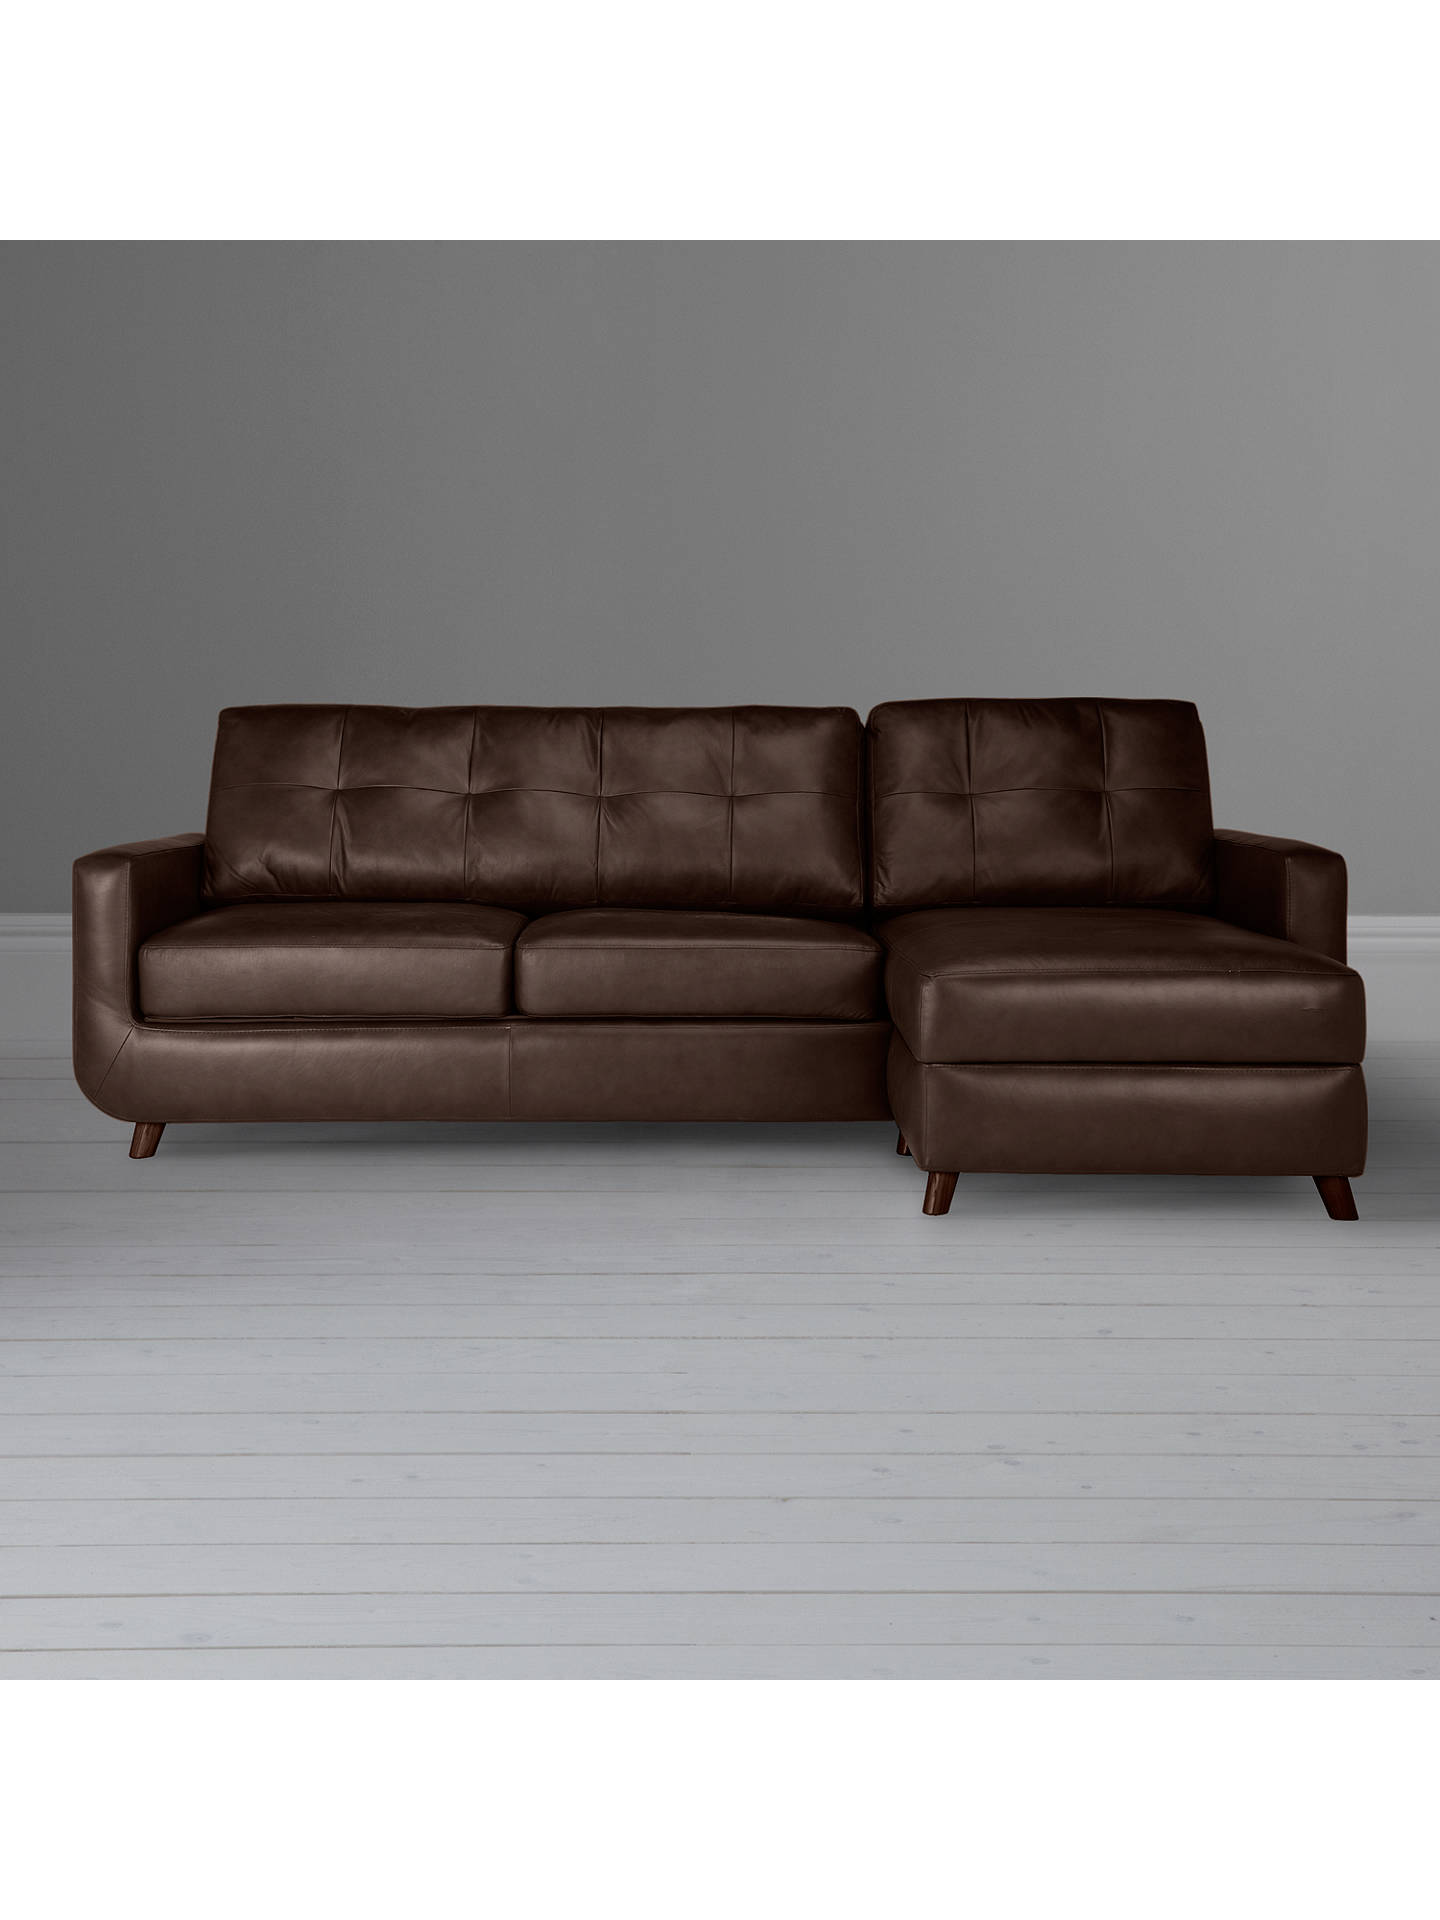 Buy John Lewis & Partners Barbican Leather RHF Chaise End Sofa, Dark Leg, Contempo Dark Chocolate Online at johnlewis.com